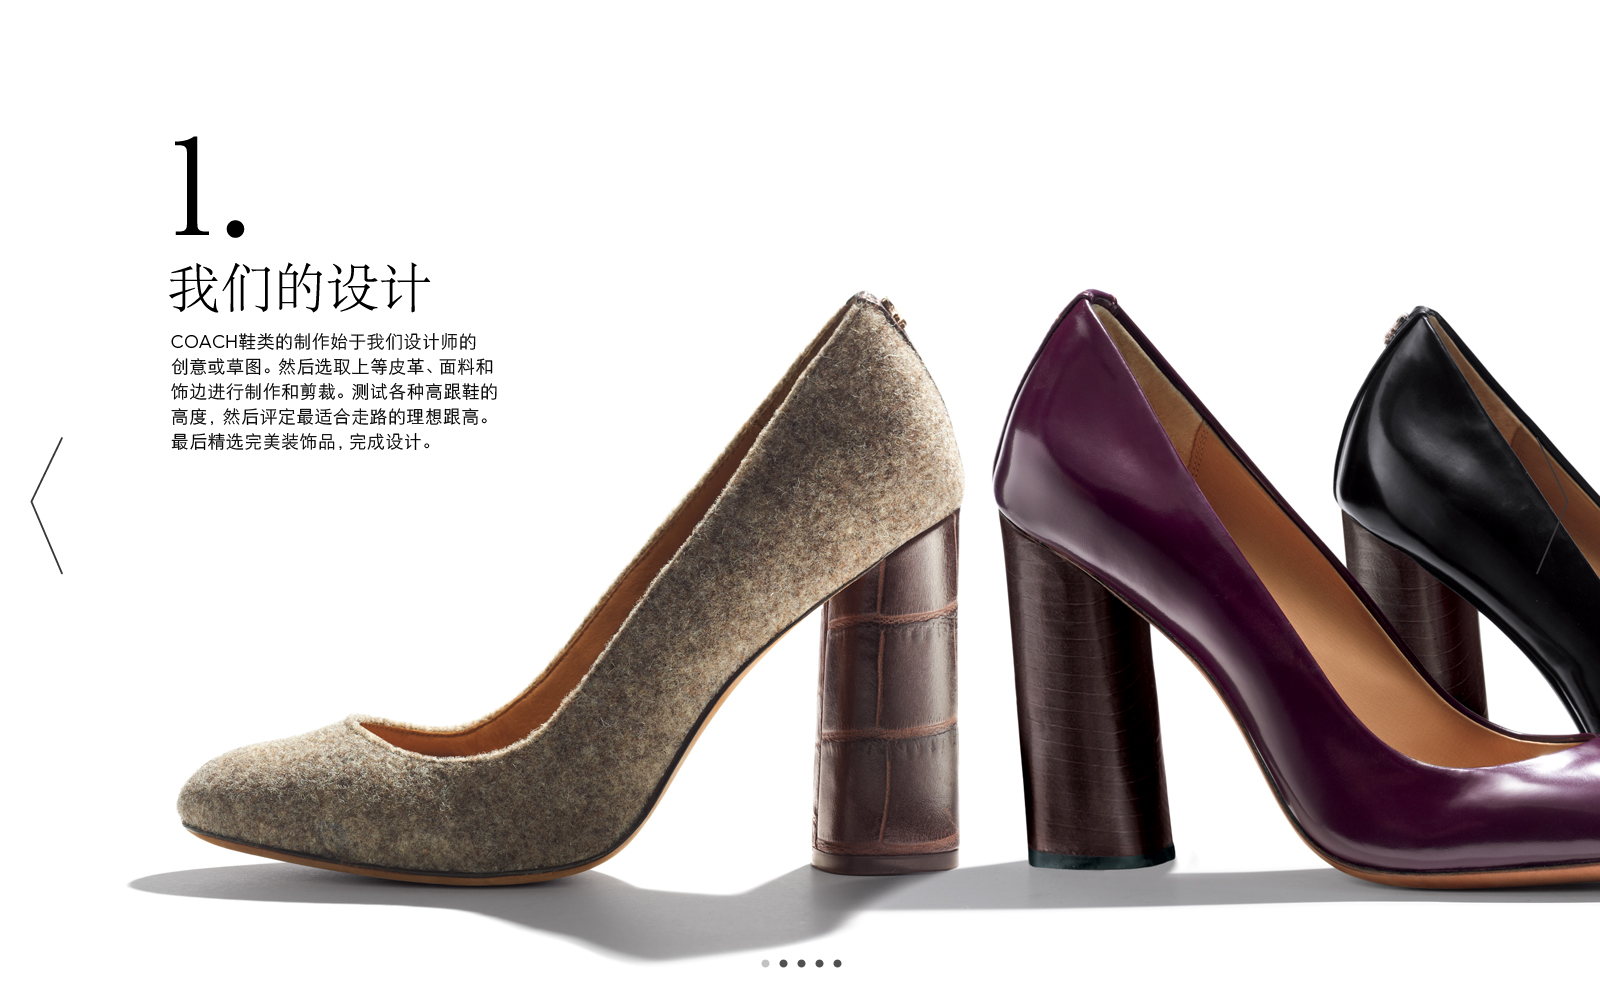 9.1_Shoe_Feature_V2_0001_design-CN.jpg